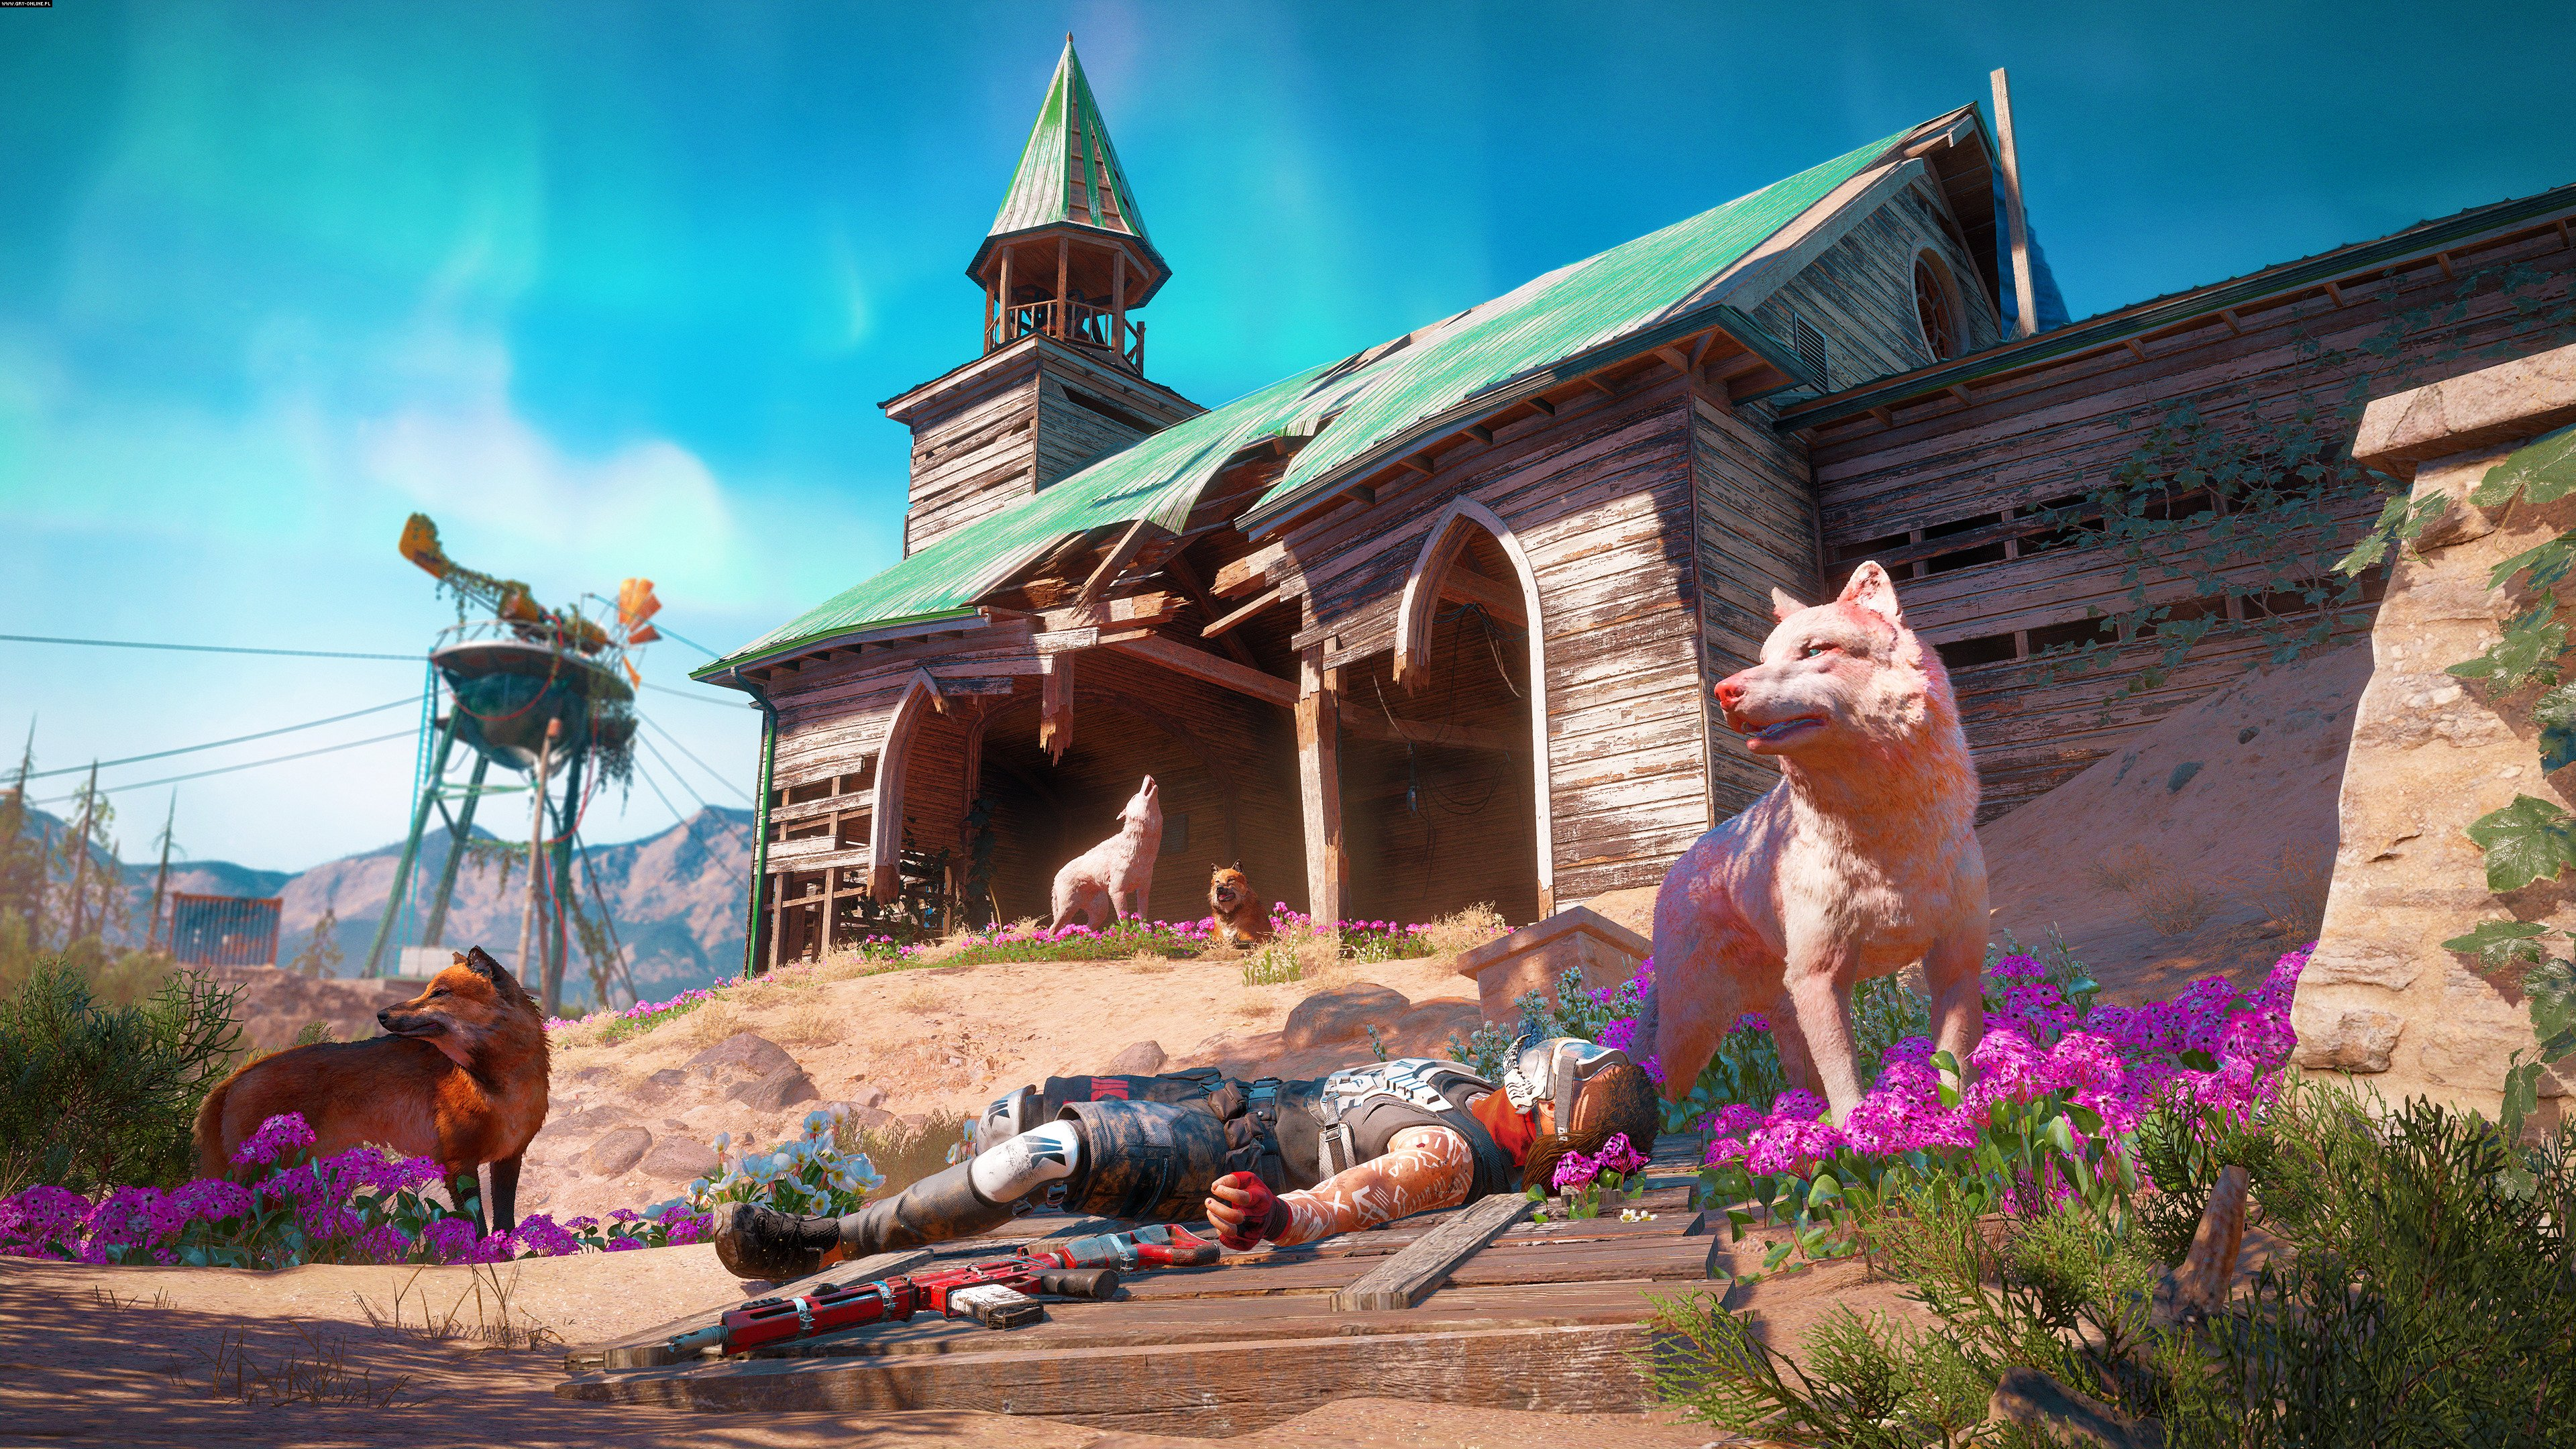 Far Cry: New Dawn PC, PS4, XONE Games Image 12/24, Ubisoft